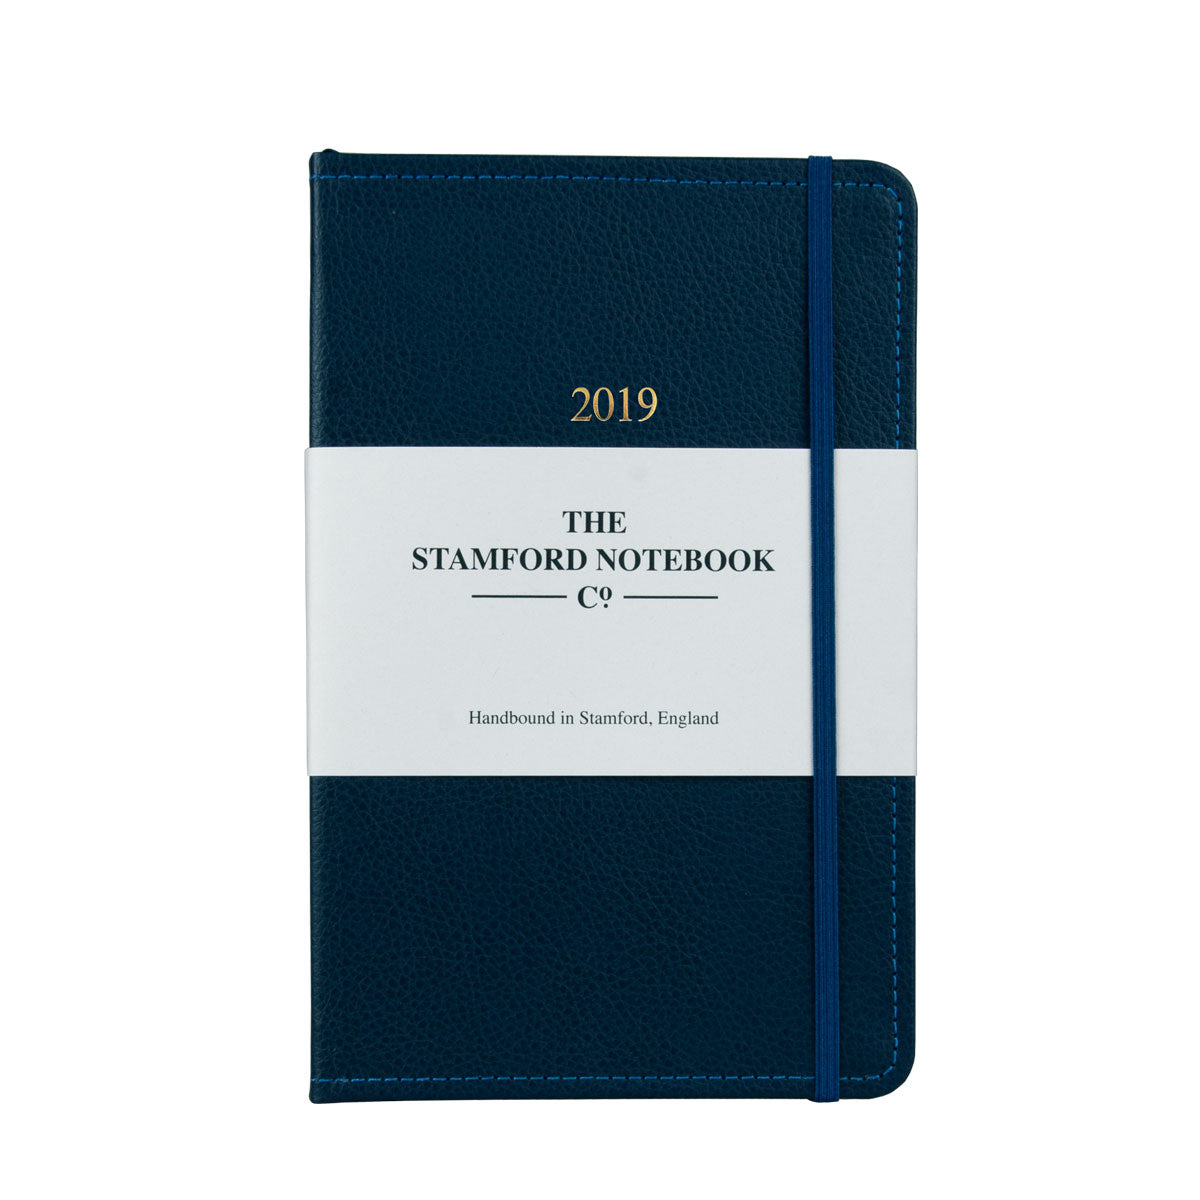 Marine Blue leather diary with navy stitching